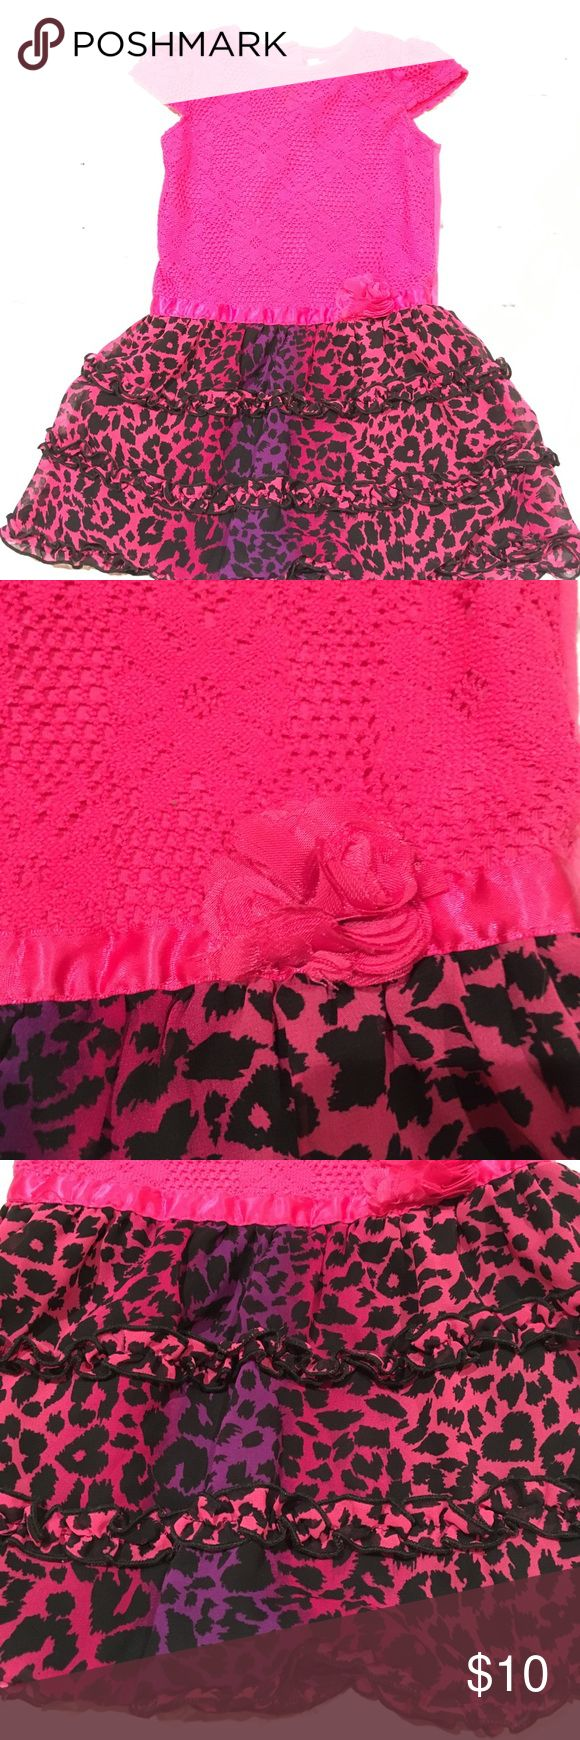 Youngland size 4T pink cheetah print dress - Euc Youngland size 4T pink cheetah print dress - Euc.  This is a cotton and polyester blend dress. Adorable lease like on the top and a fun cheetah print on the bottom. Drop waist with a small flower. The dress  has been worn but it is in excellent used condition. No rips or stains. The flower is a little bit tethered more than likely from my toddler pulling on it but still looks great. Youngland Dresses Casual